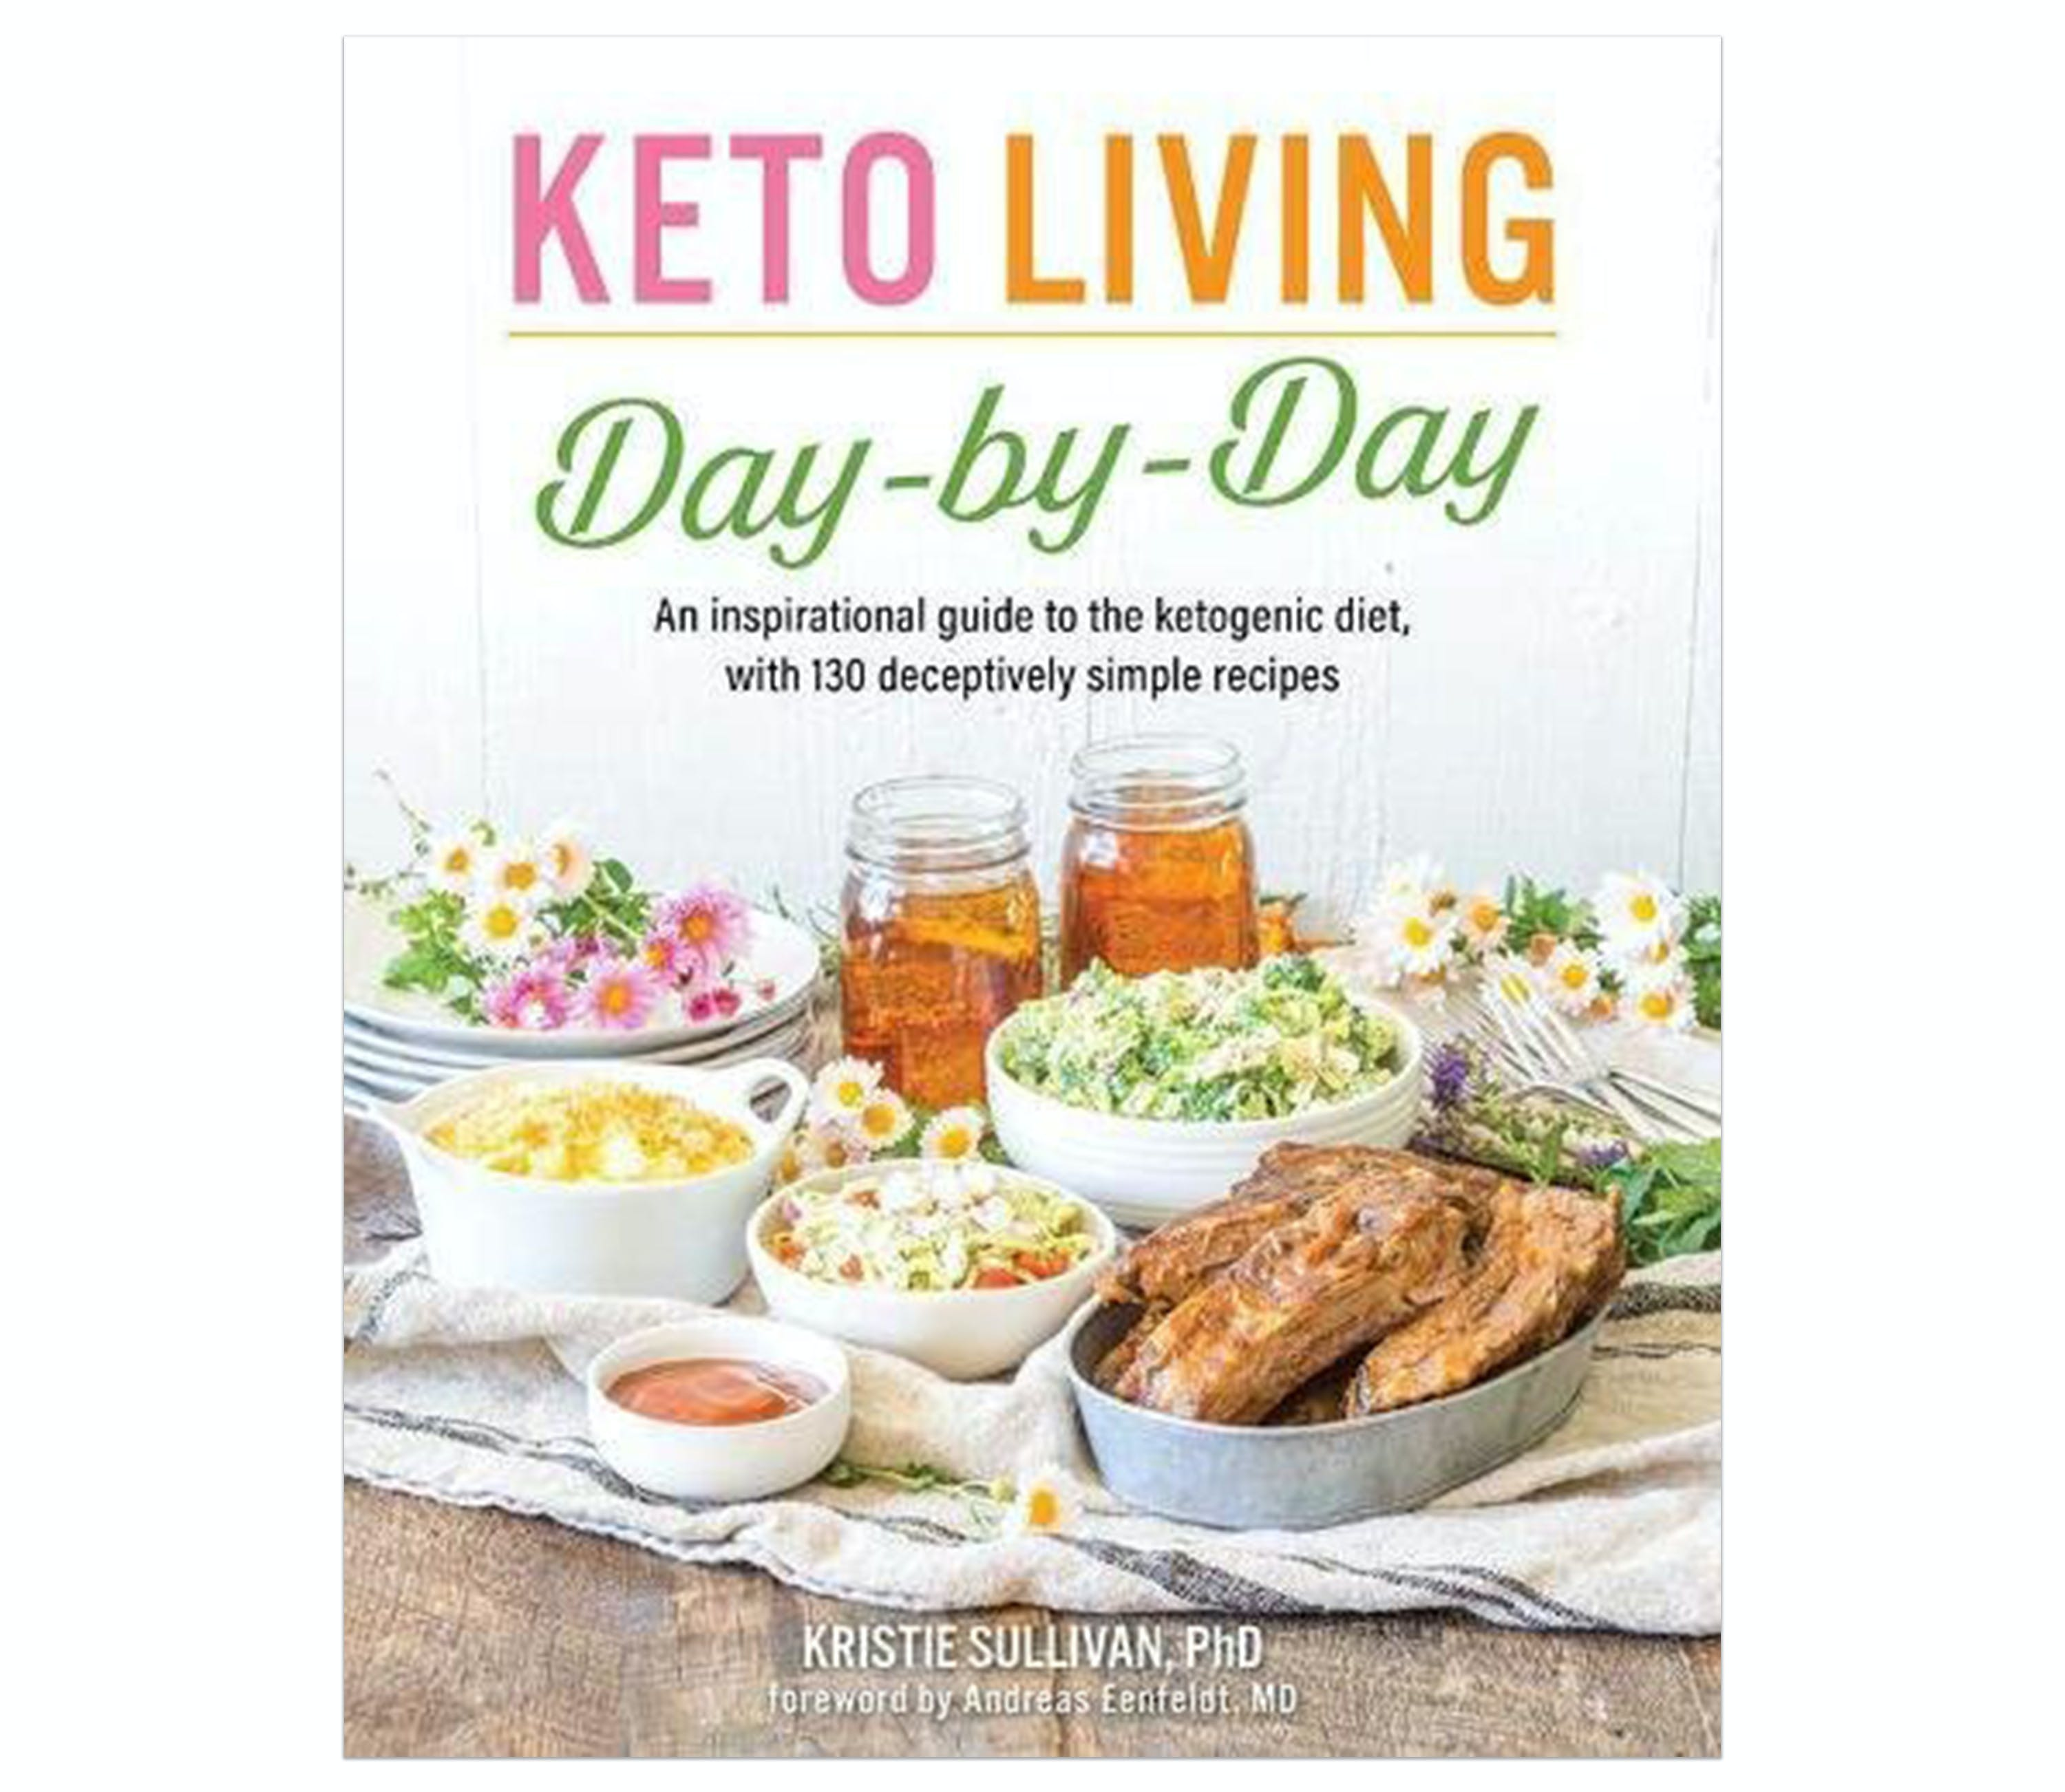 Pre-order Keto Living Day by Day